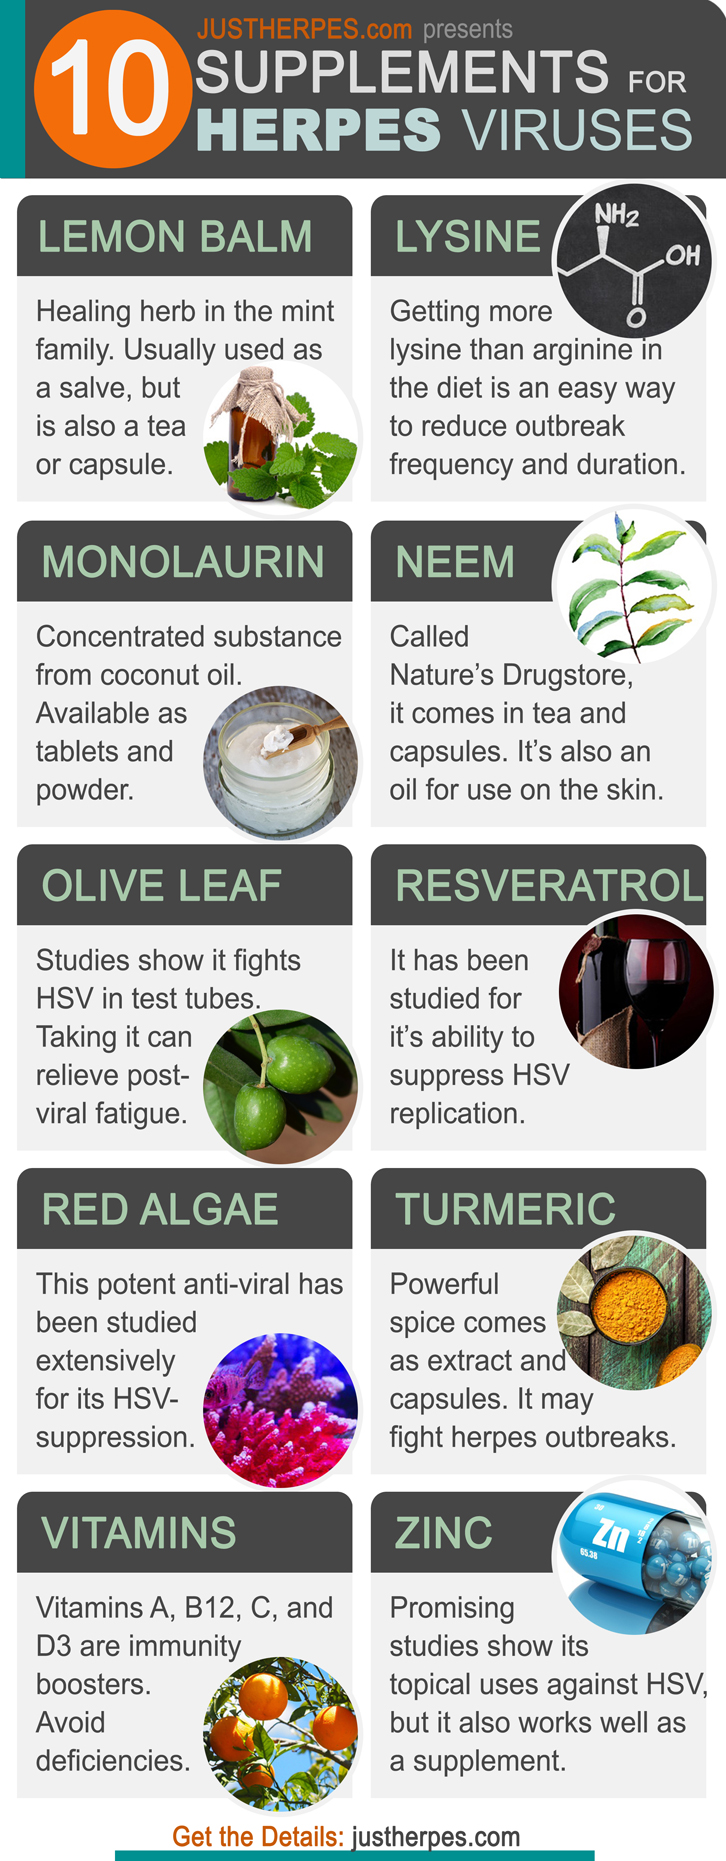 10 Supplements for herpes viruses infographic